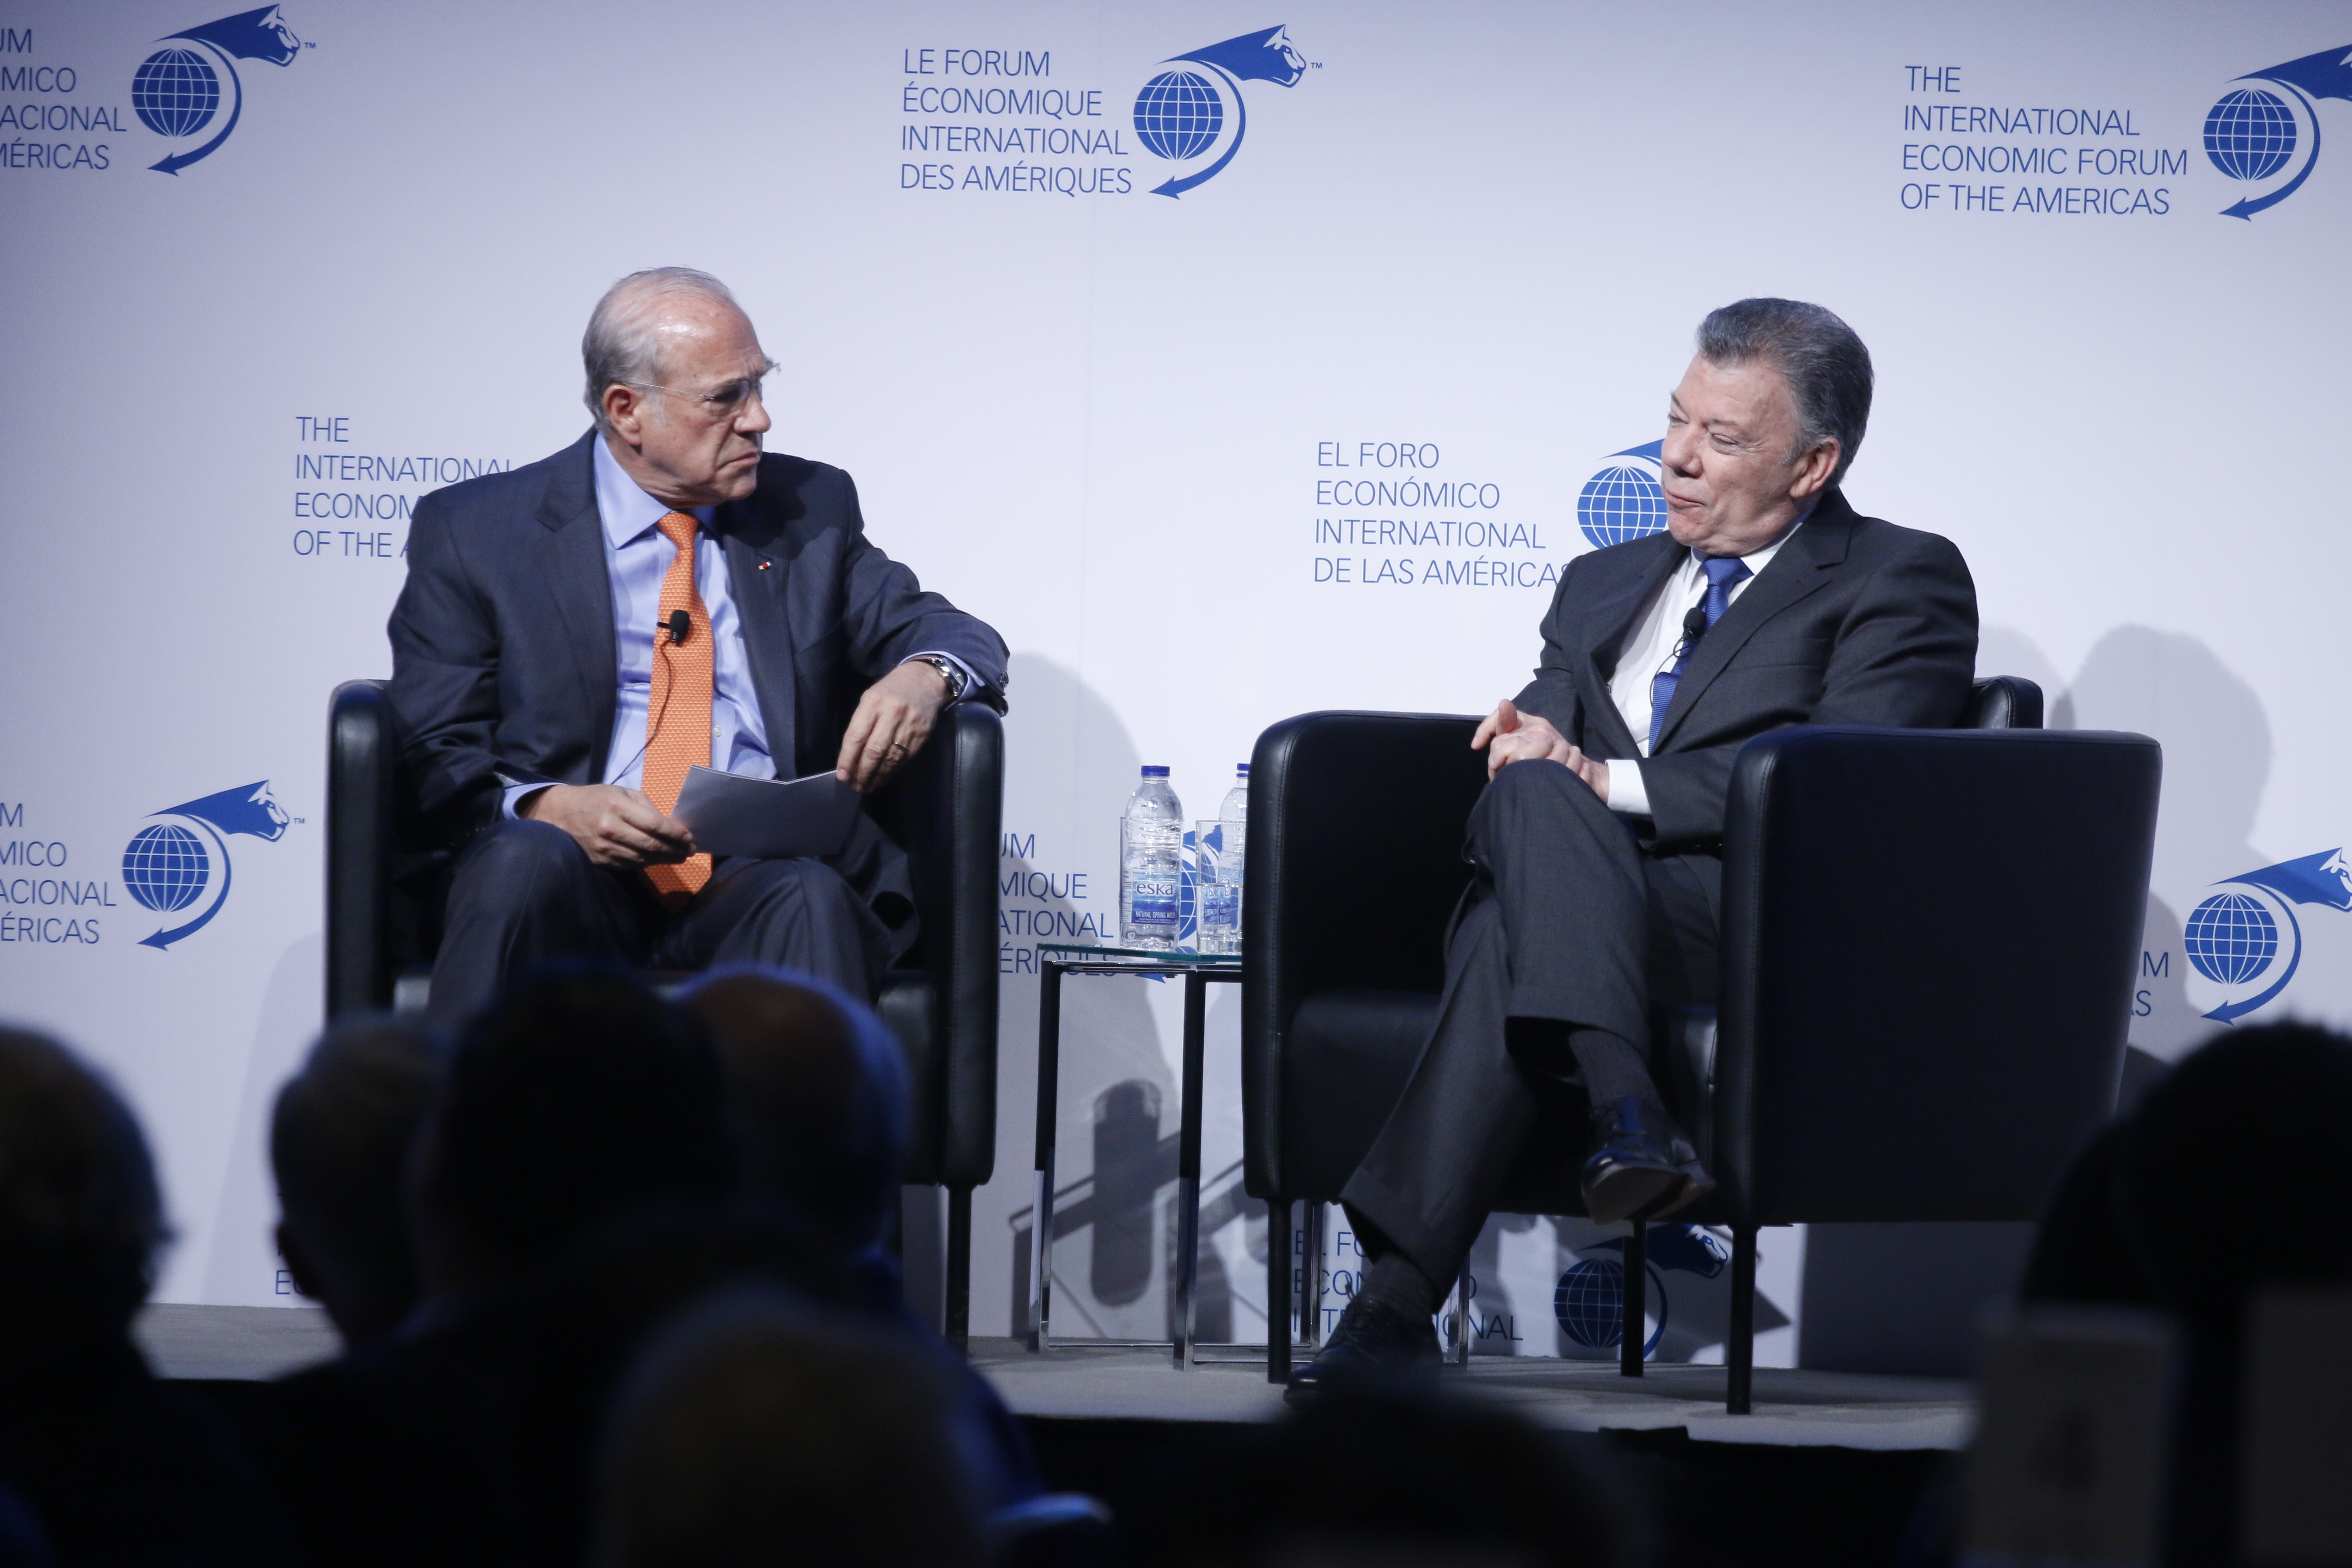 Juan Manuel Santos Calderón, President of Colombia, interviewed by Ángel Gurría, Secretary-General, Organisation for Economic Co-operation and Development (OECD)